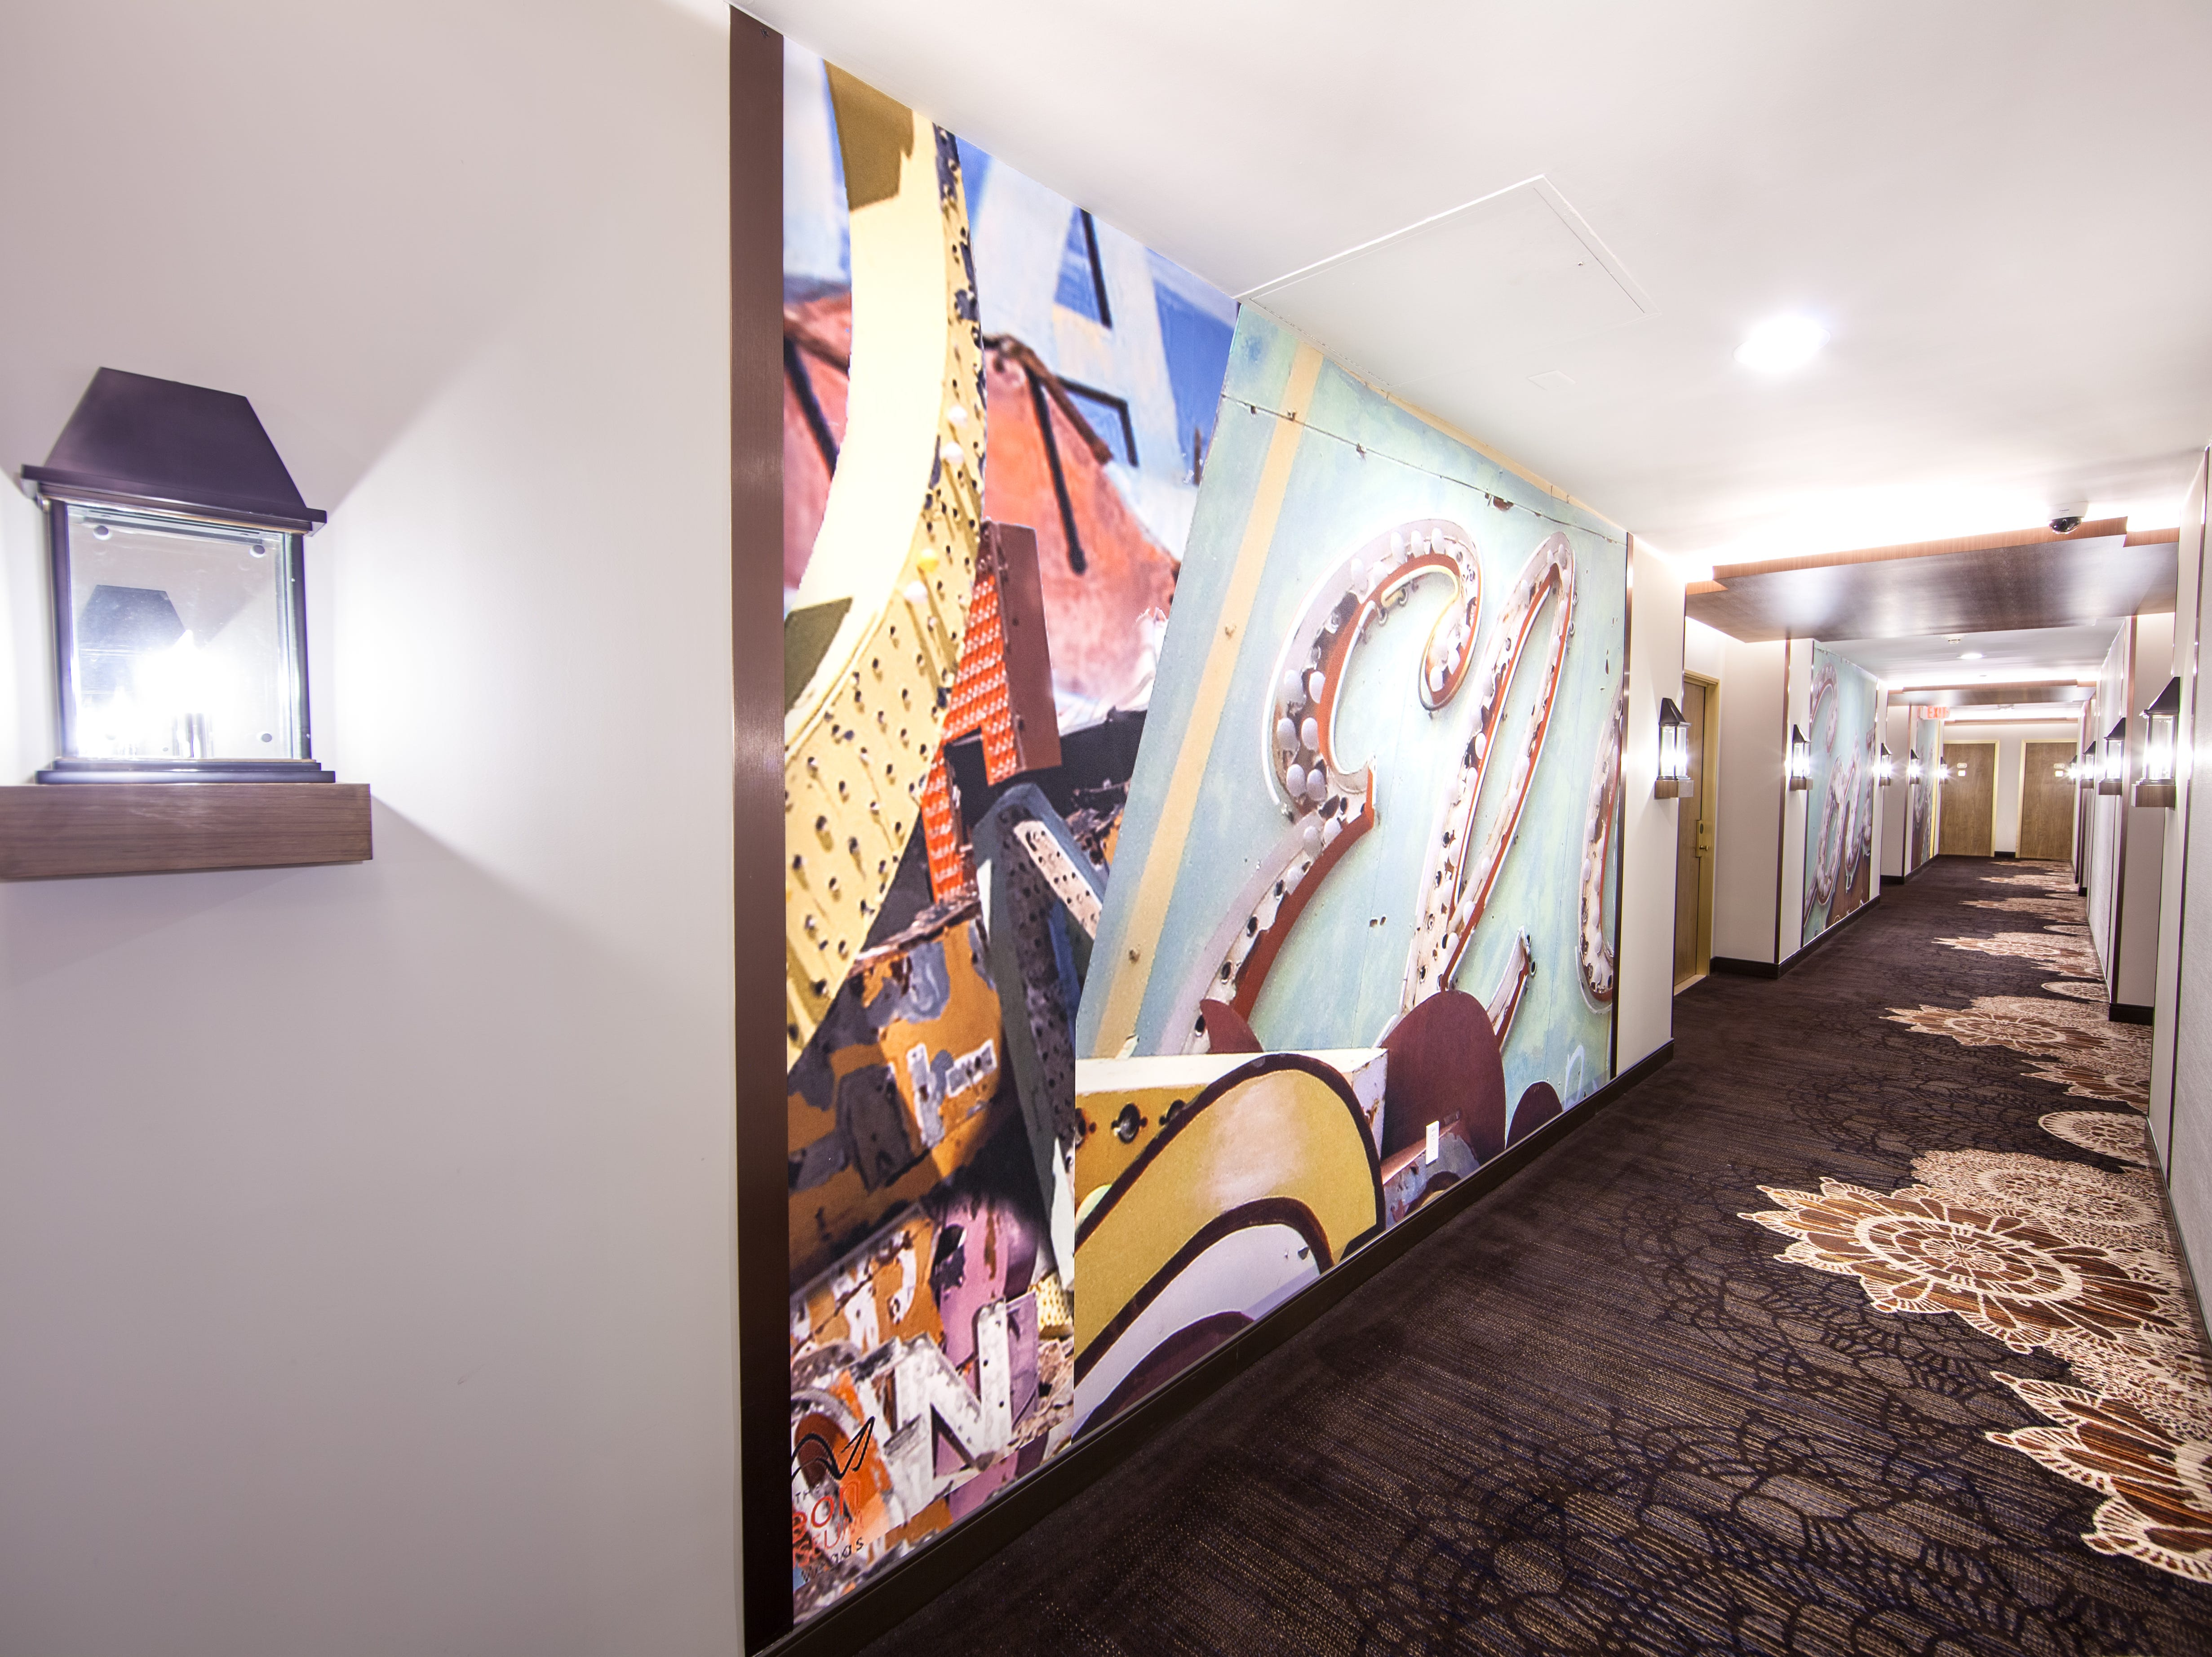 The historic El Cortez Hotel & Casino in Downtown Las Vegas just debuted its newly renovated Tower Premium rooms with redesigned hallways.